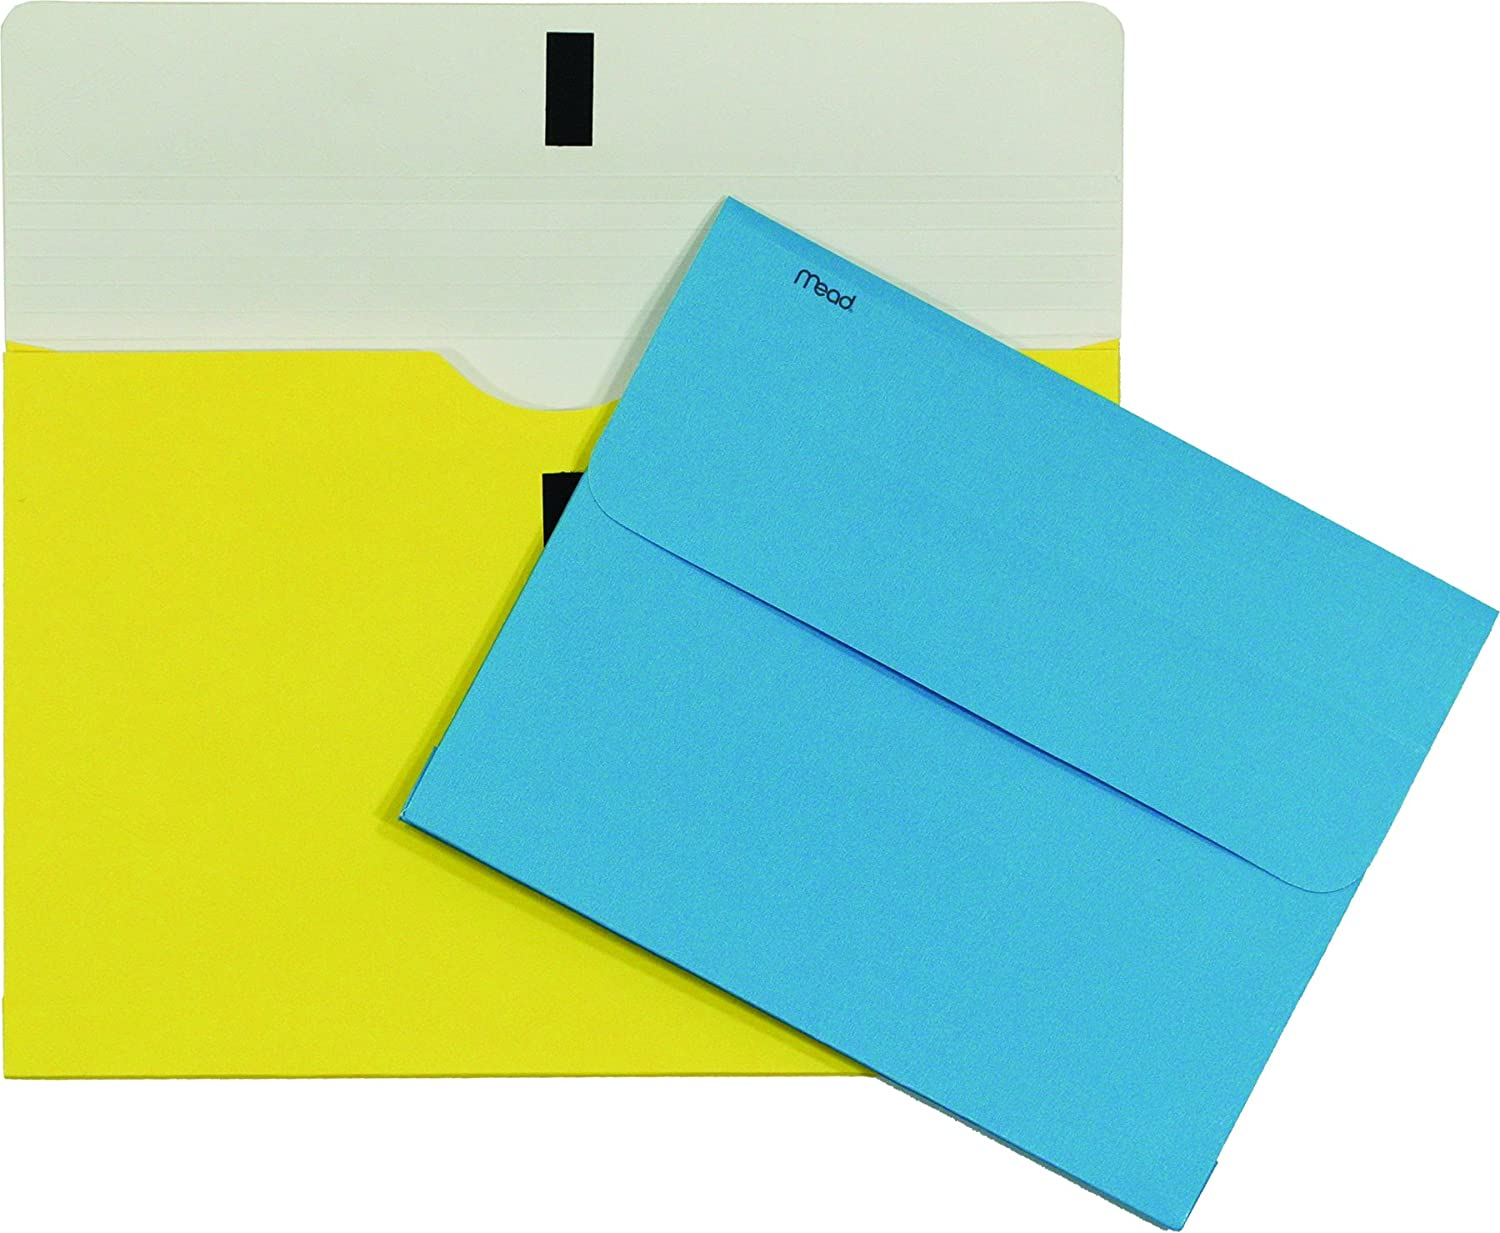 Mead 35362 Brite Wallet Storage Pocket 9-1//2x11-3//4-Inch Letter Size Assorted Colors